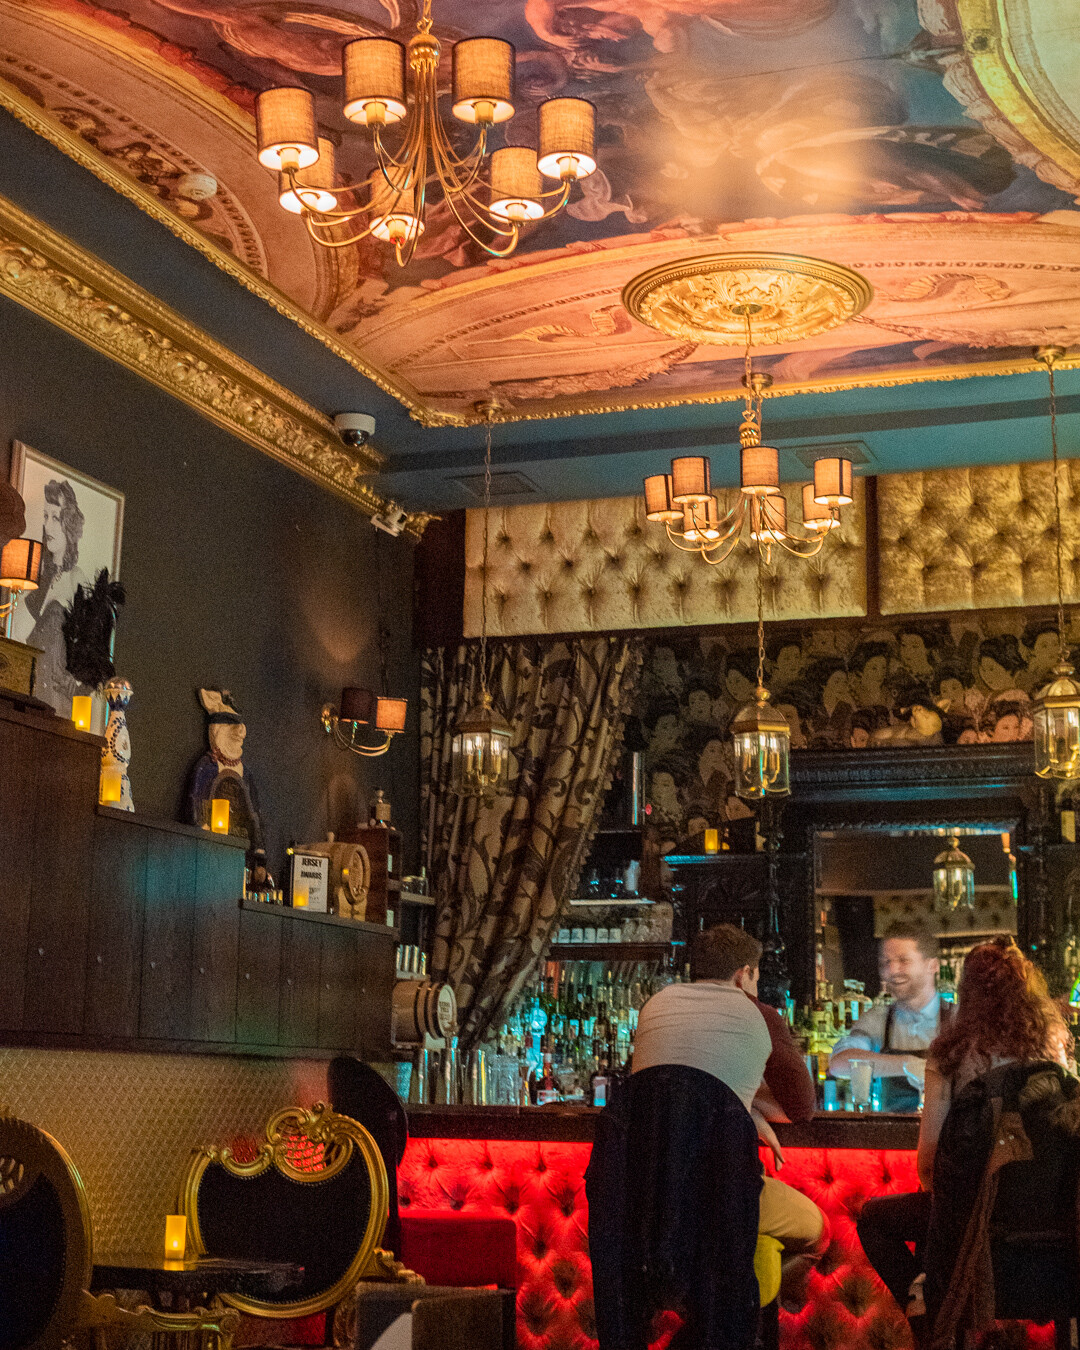 The Blind Pig speakeasy bar, Jersey